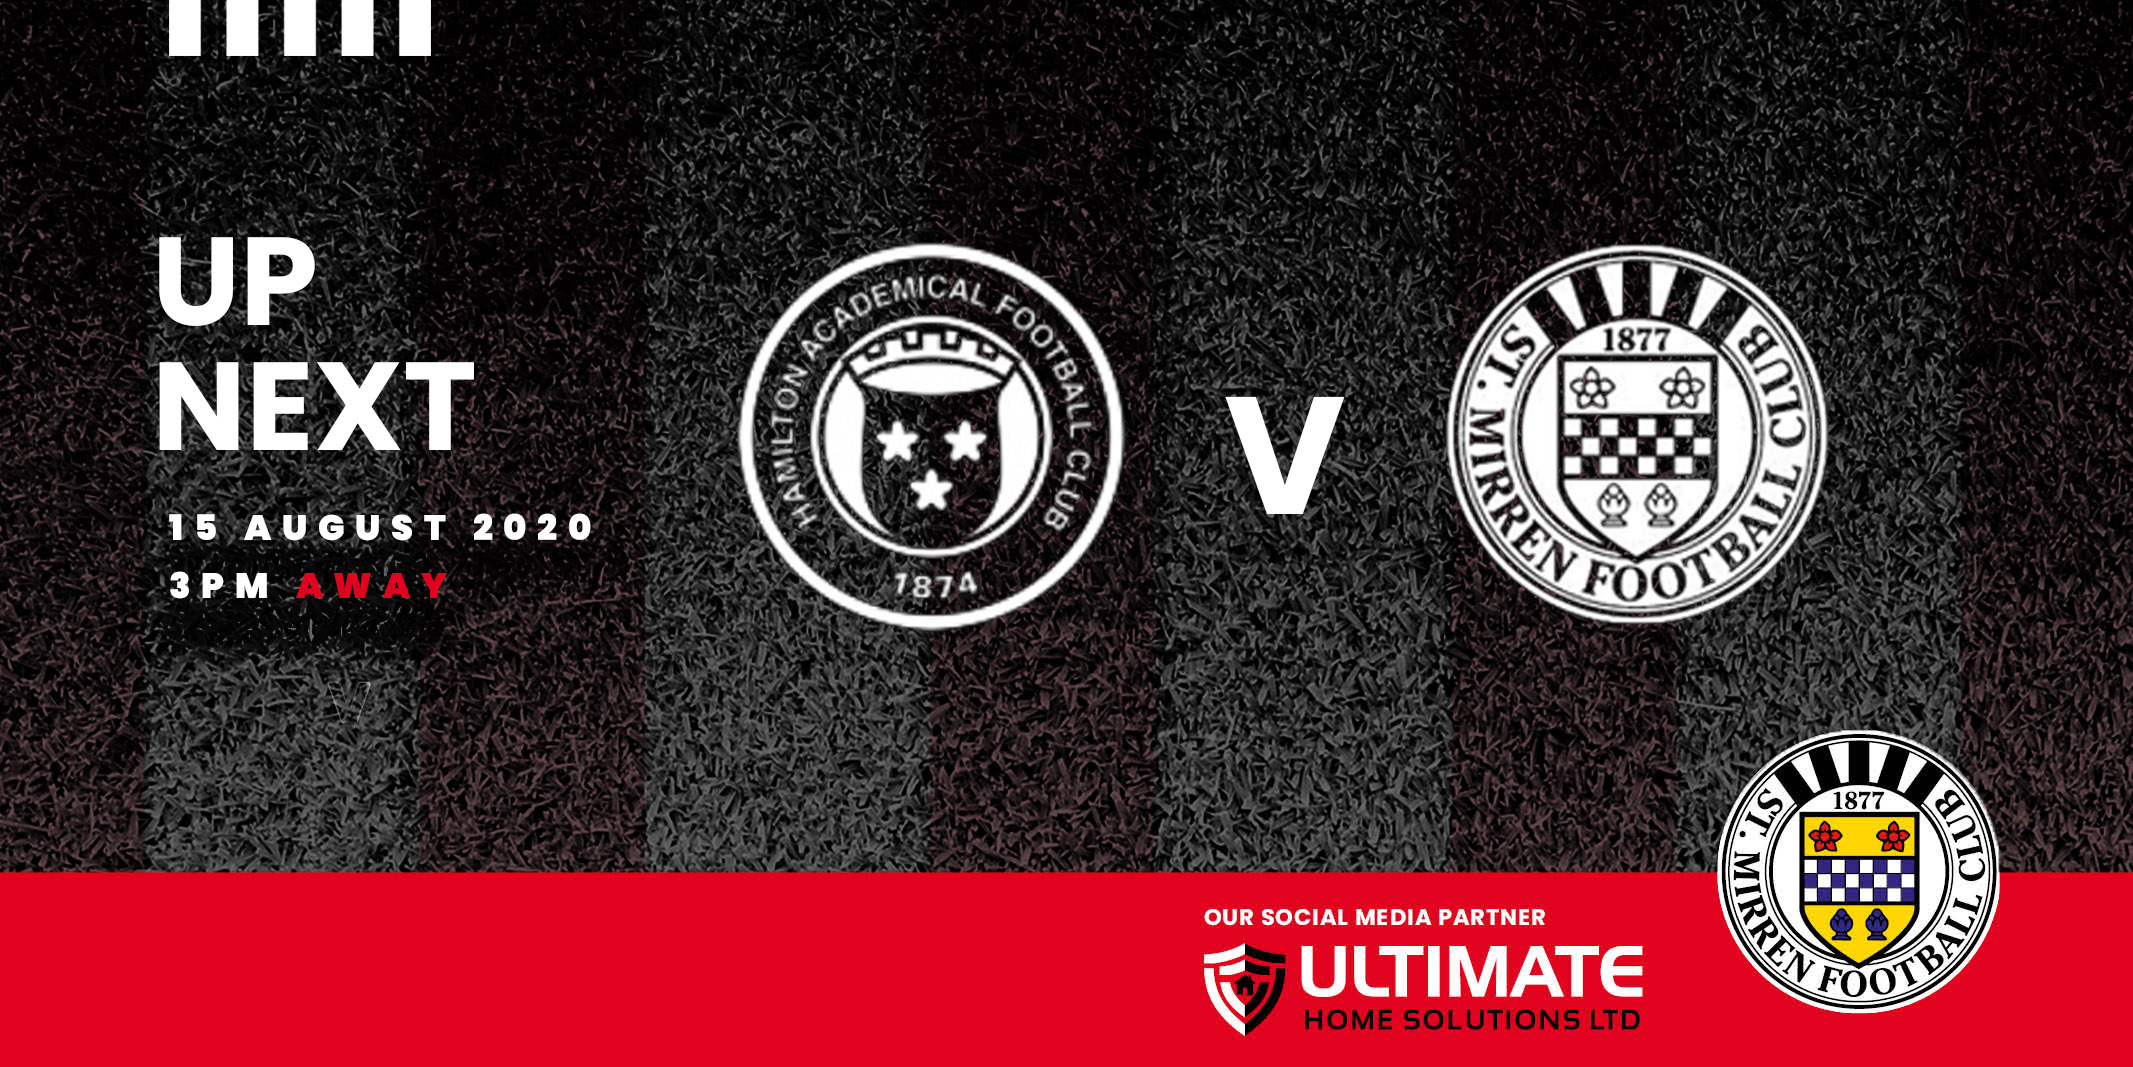 Up next: Hamilton v St Mirren (15th August 2020)